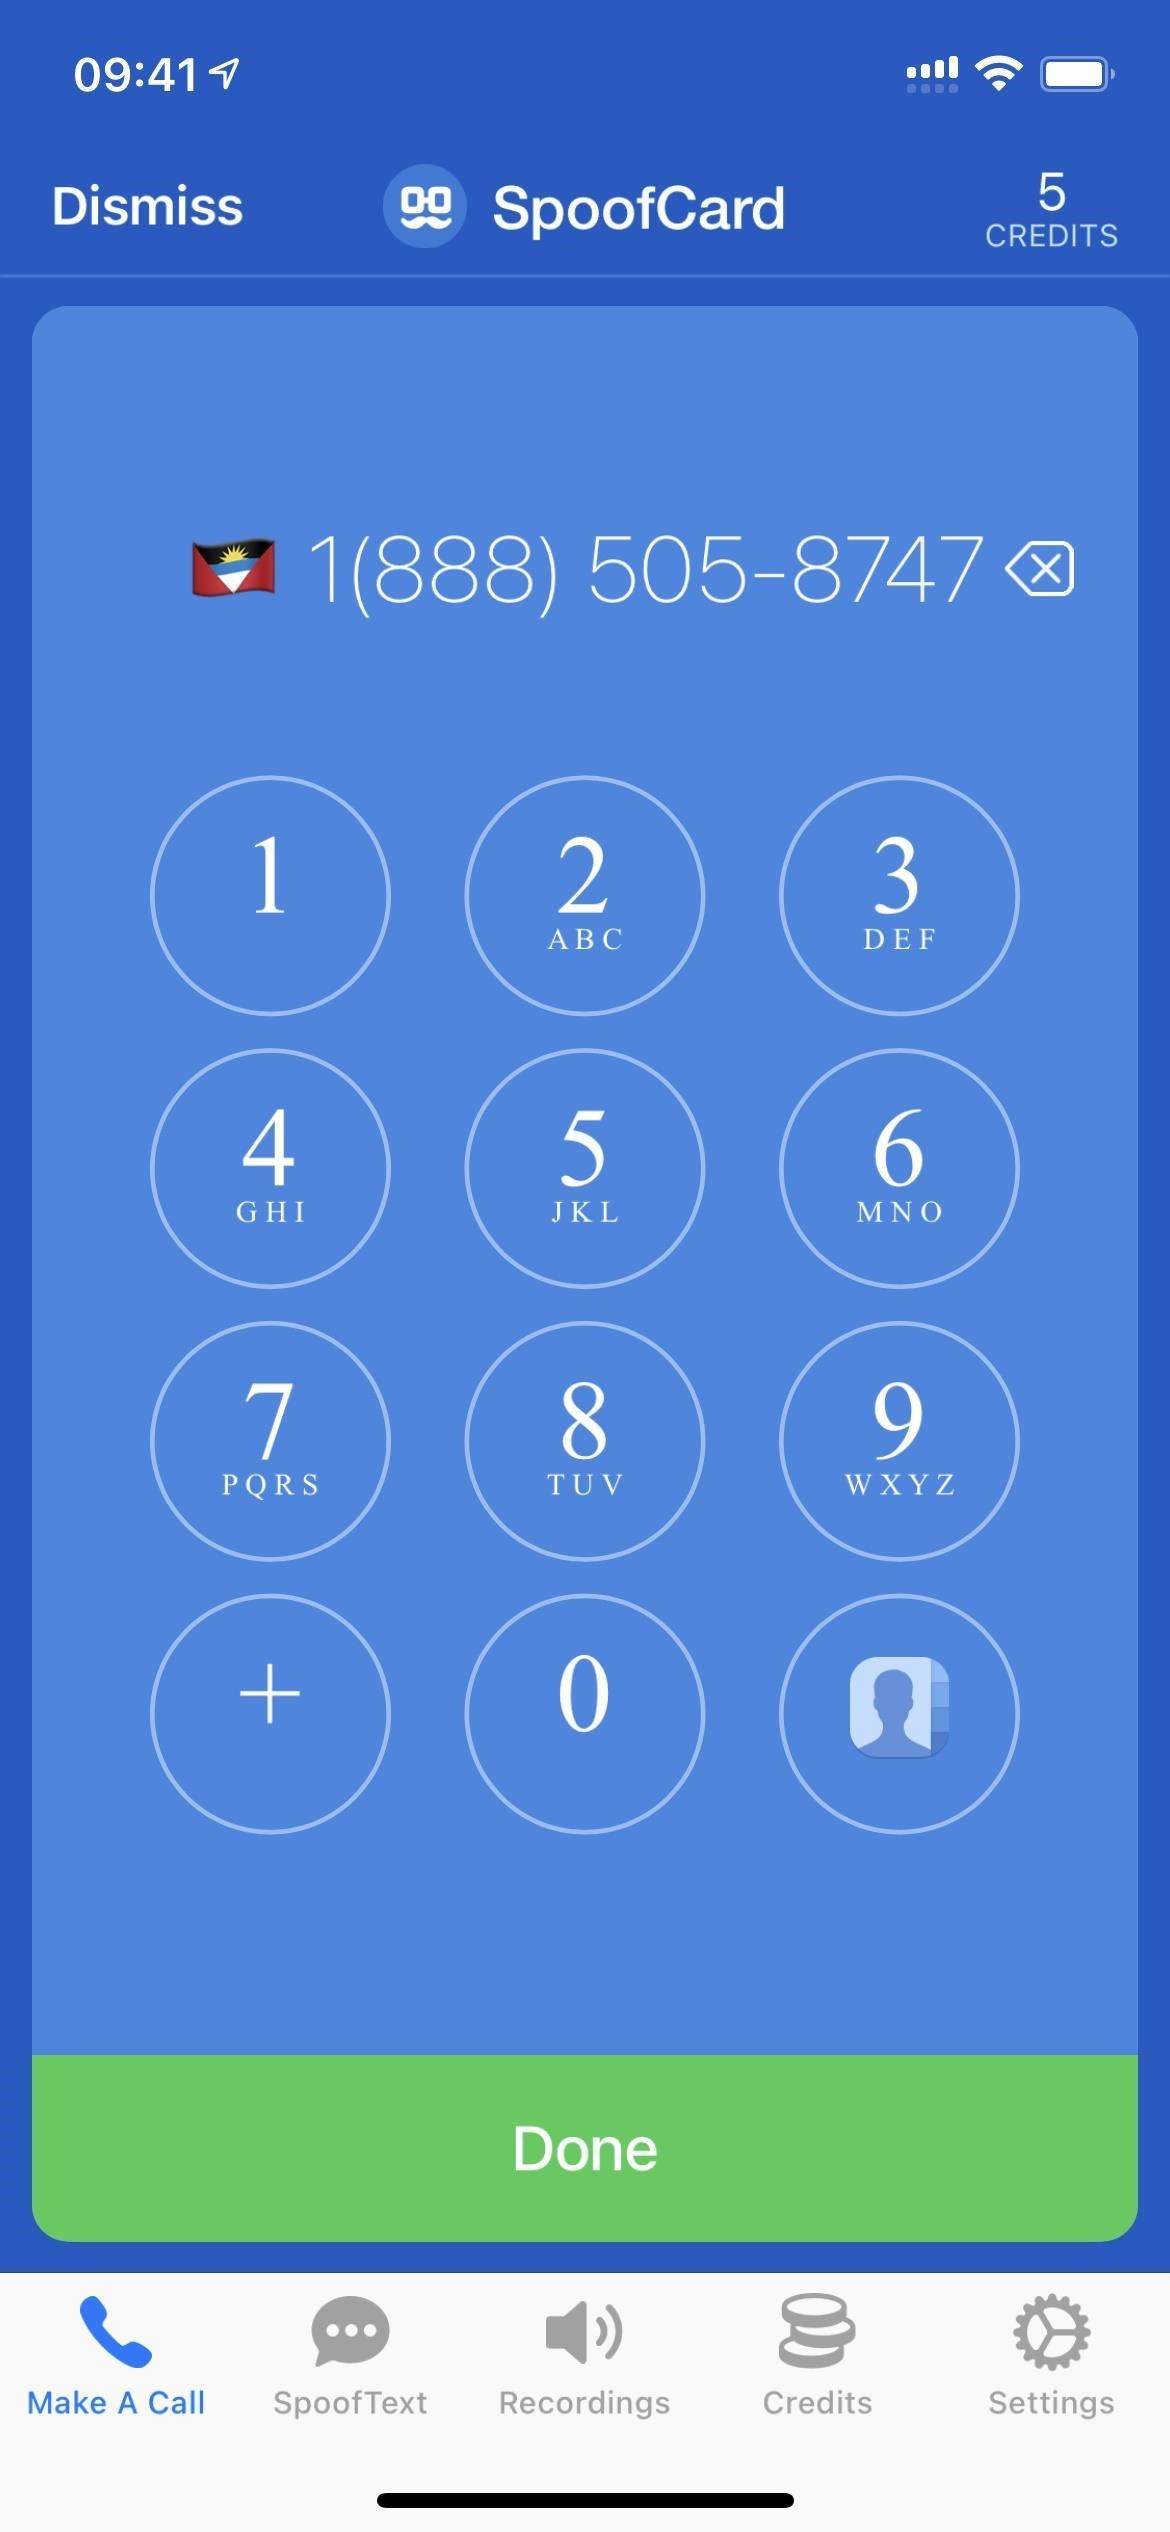 Make Spoofed Calls Using Any Phone Number You Want Right from Your Smartphone